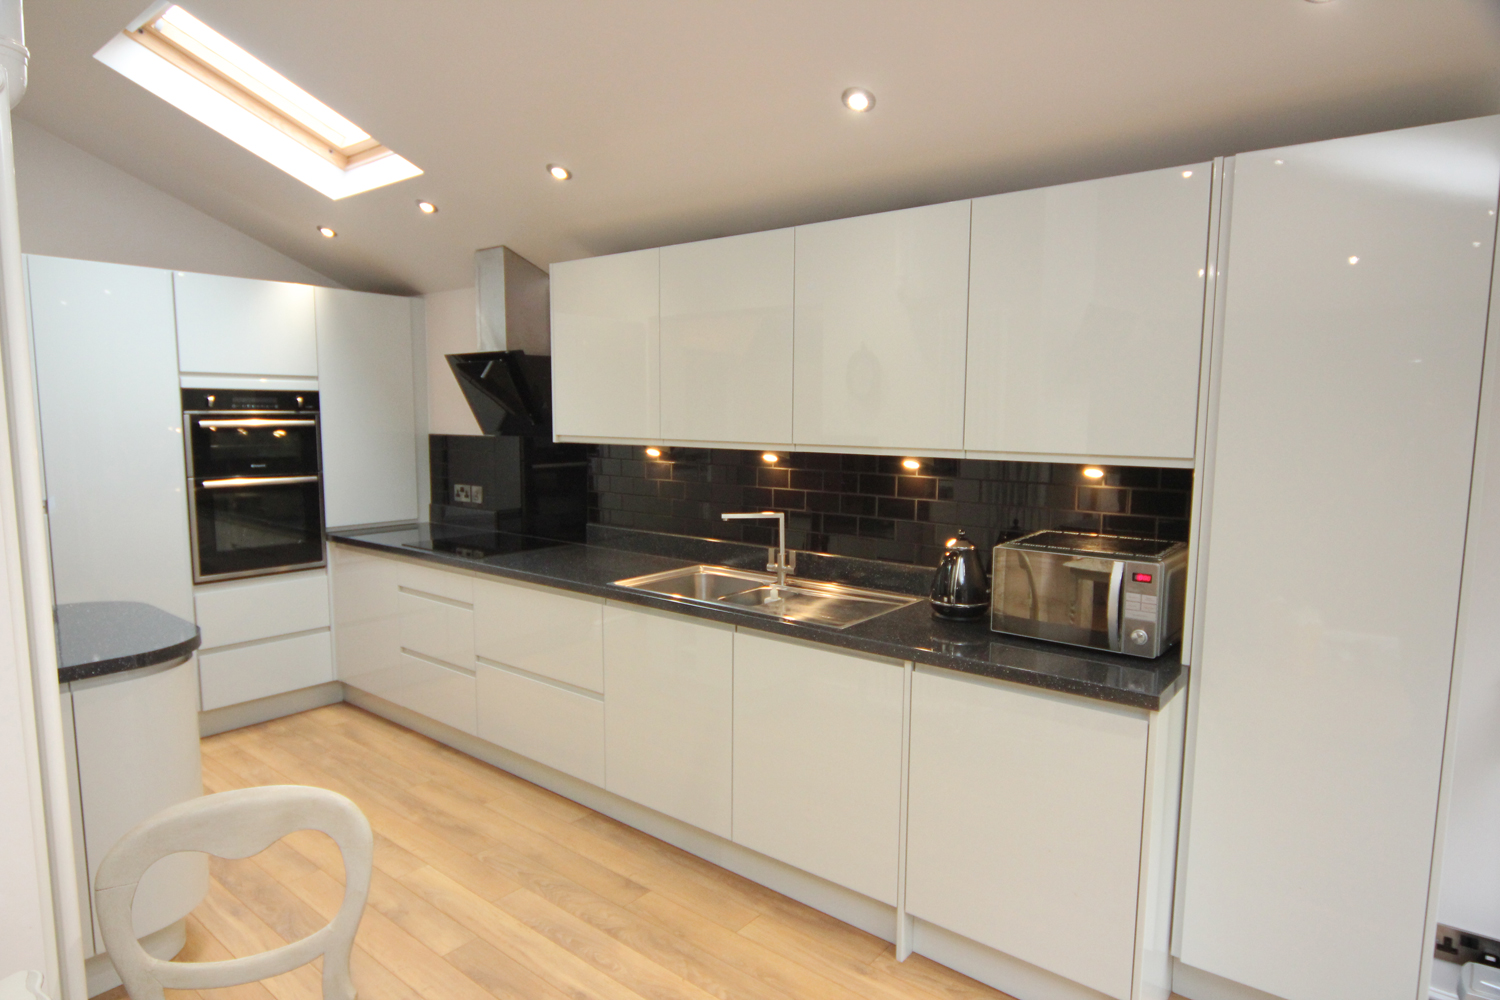 White Contemporary Kitchen with Granite Worktops, Worcester ... on black with white kitchen floor, black with white doors, black with white drawers,